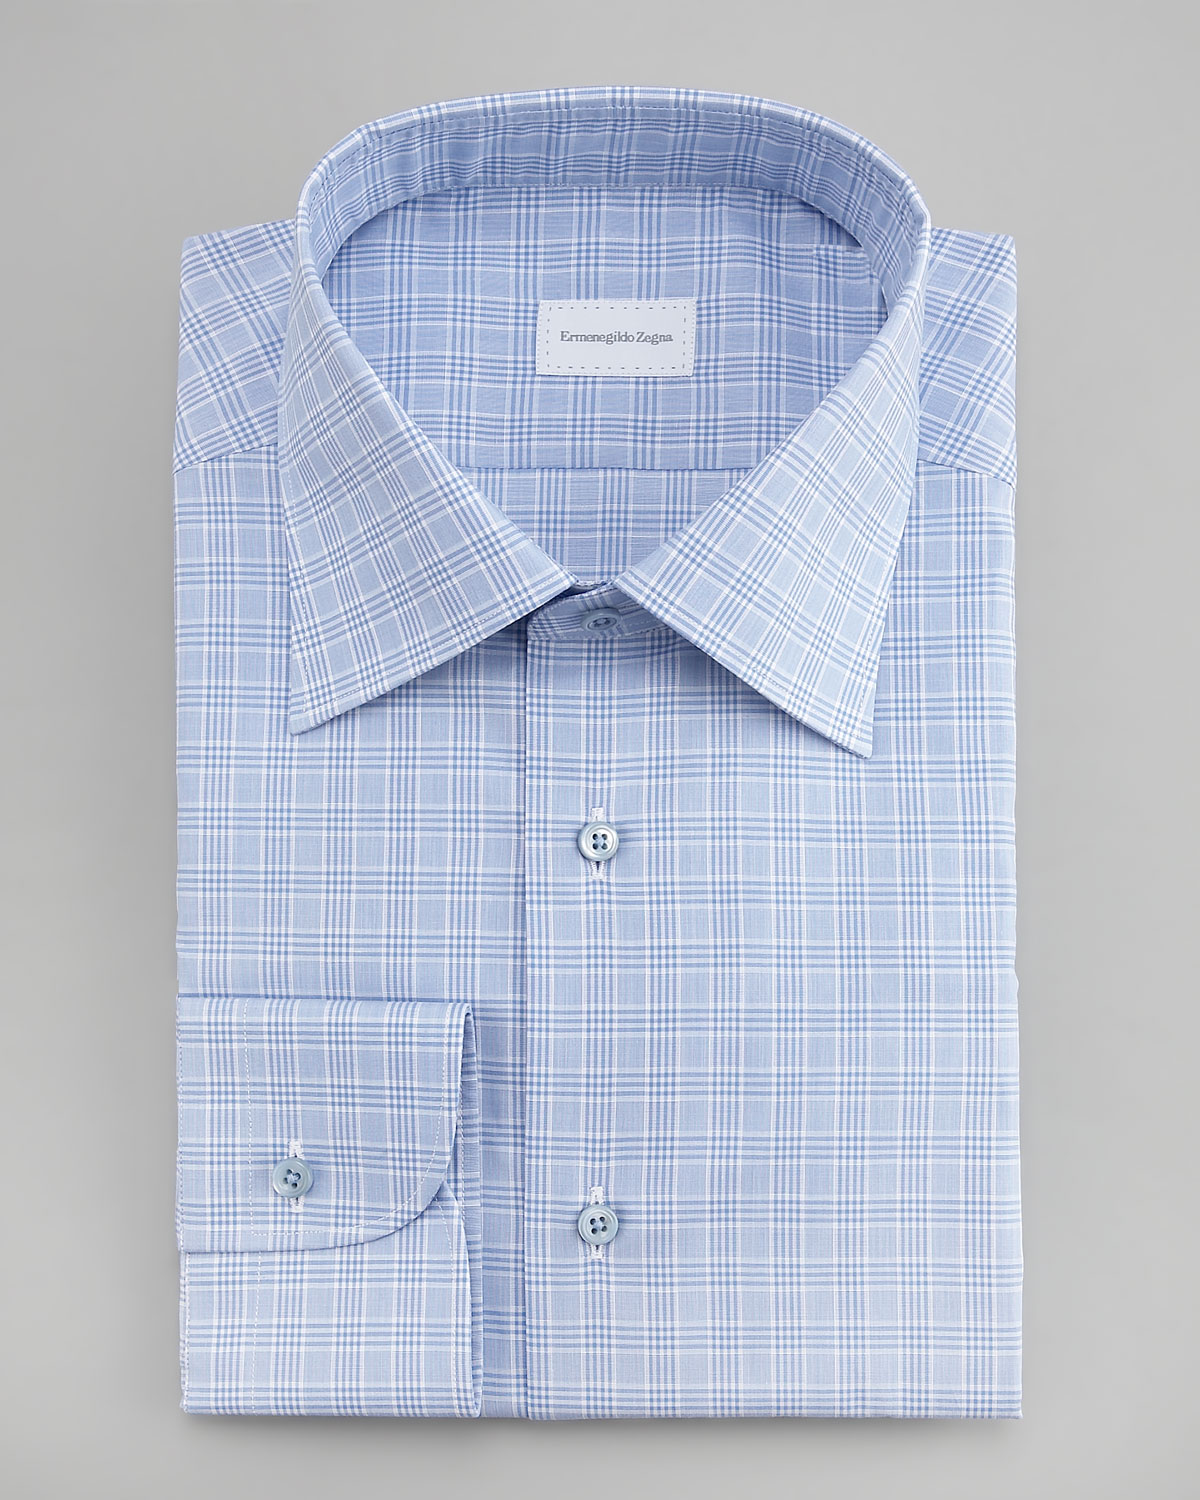 Ermenegildo zegna check dress shirt light blue in blue for Blue check dress shirt